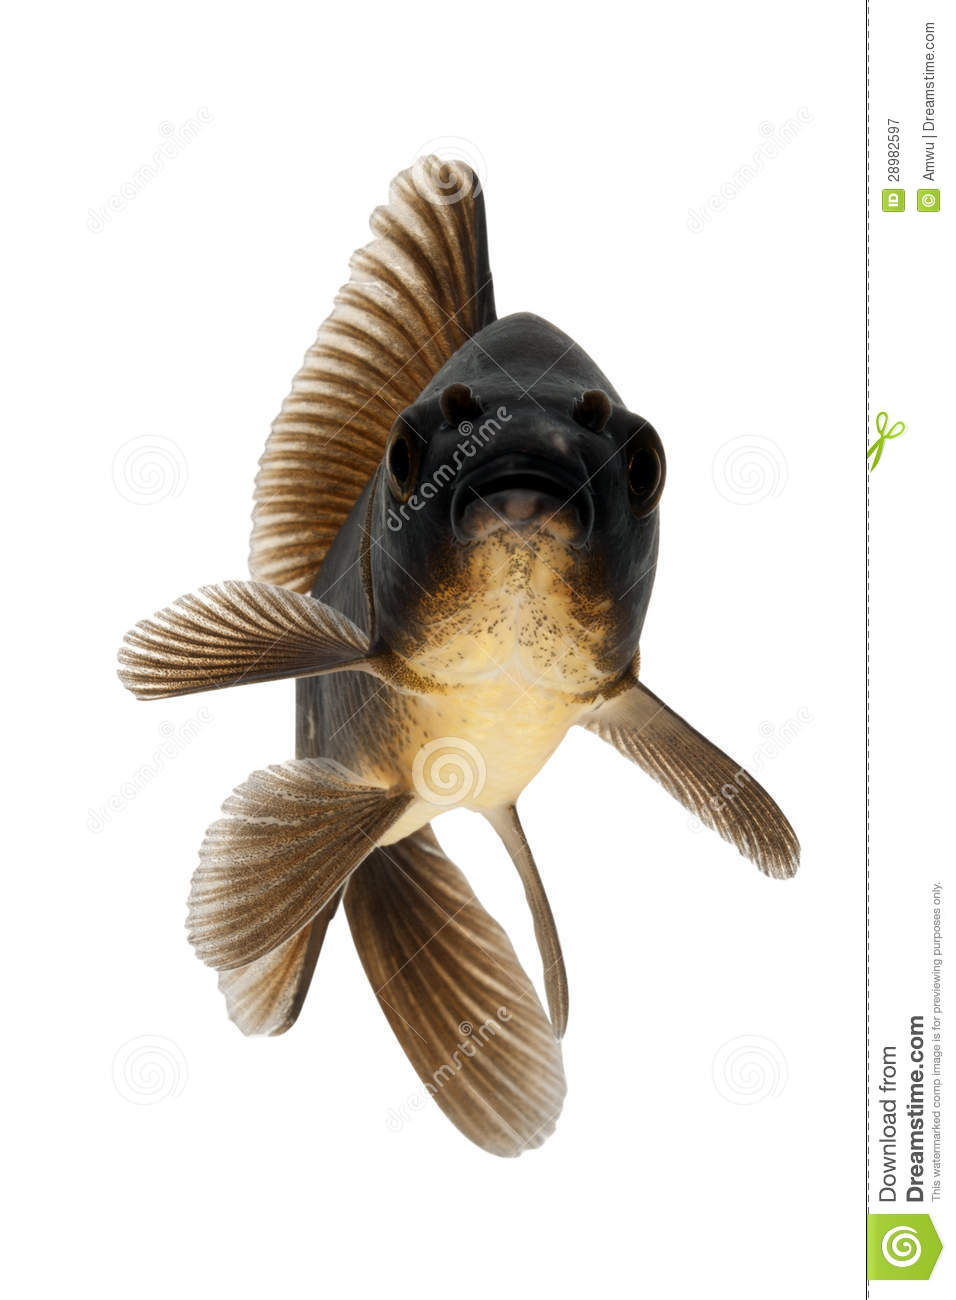 Black koi fish royalty free stock photography image for All black koi fish